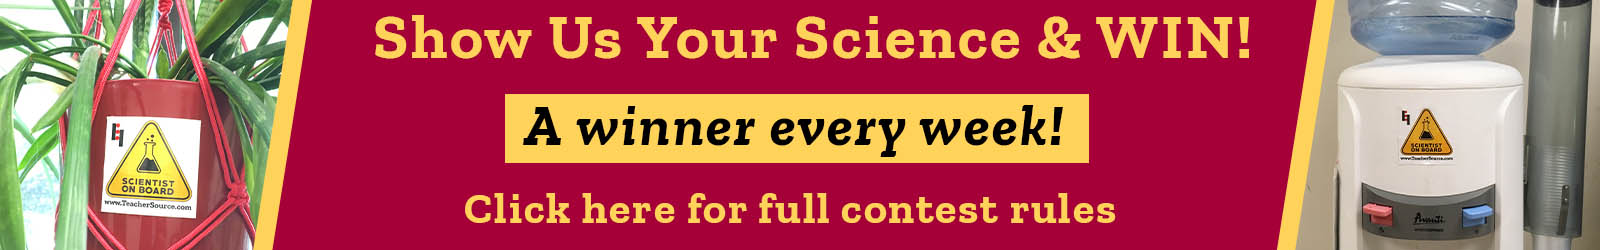 Science Supplies for Teachers and Home School Lessons | Buy